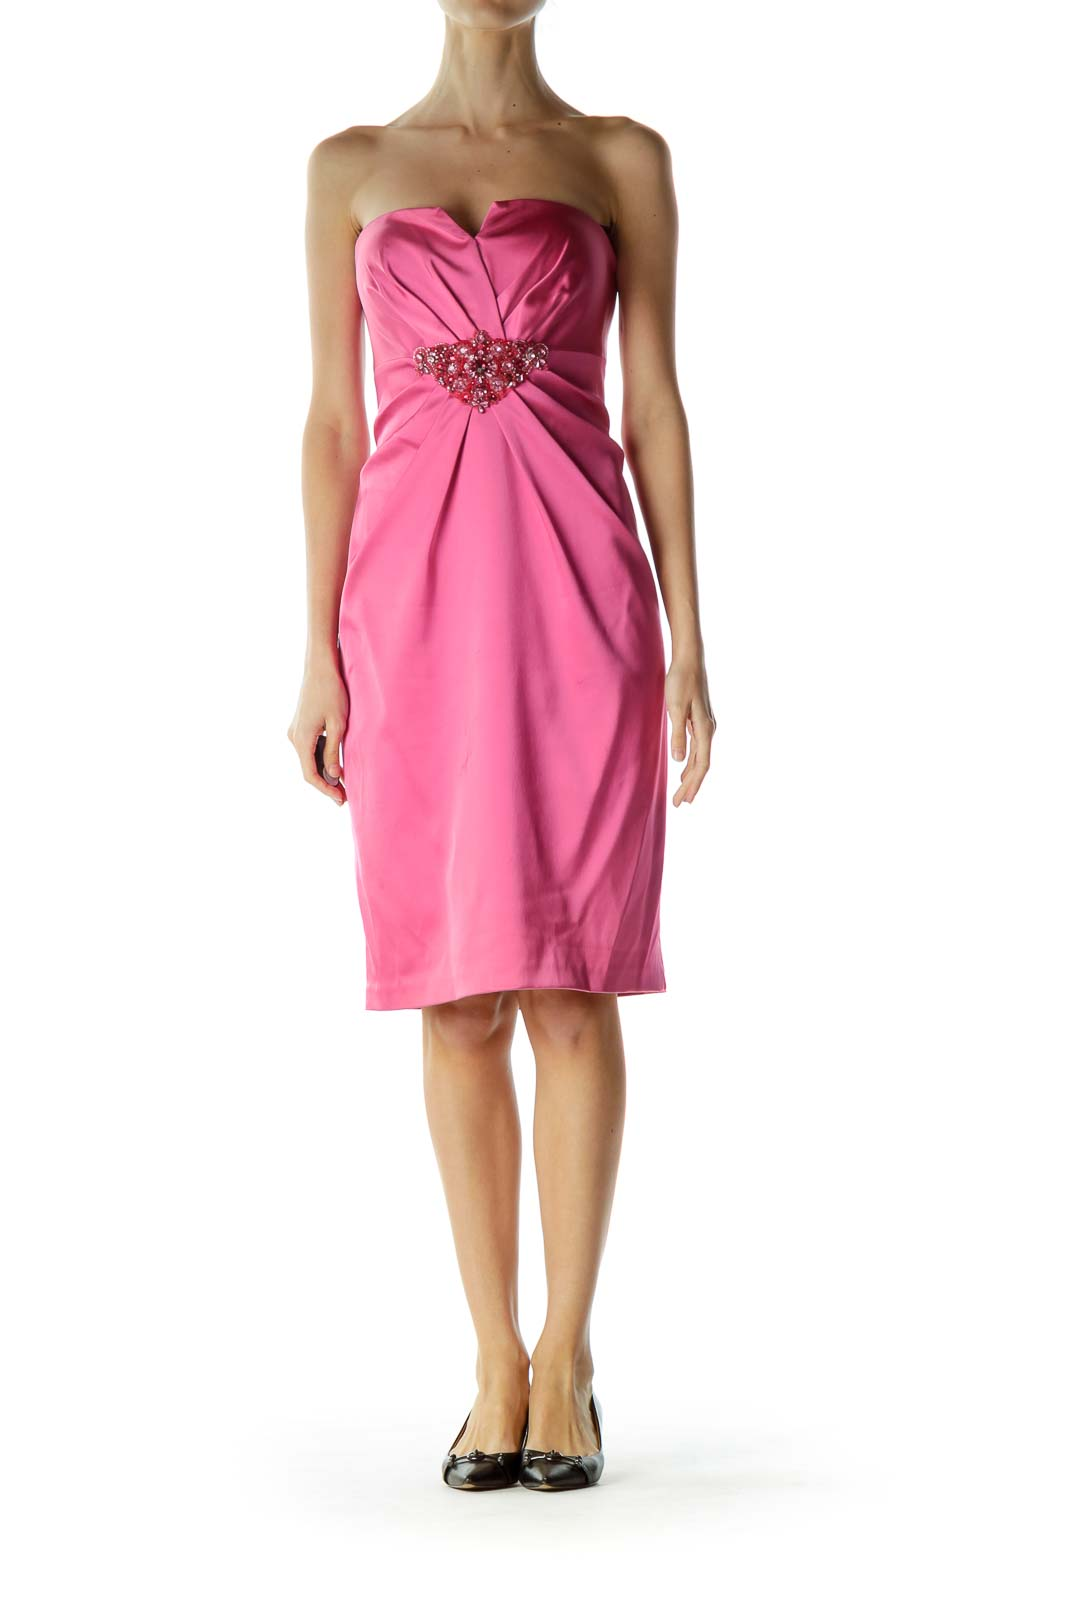 Pink Strapless Cocktail Dress with Beaded Detail